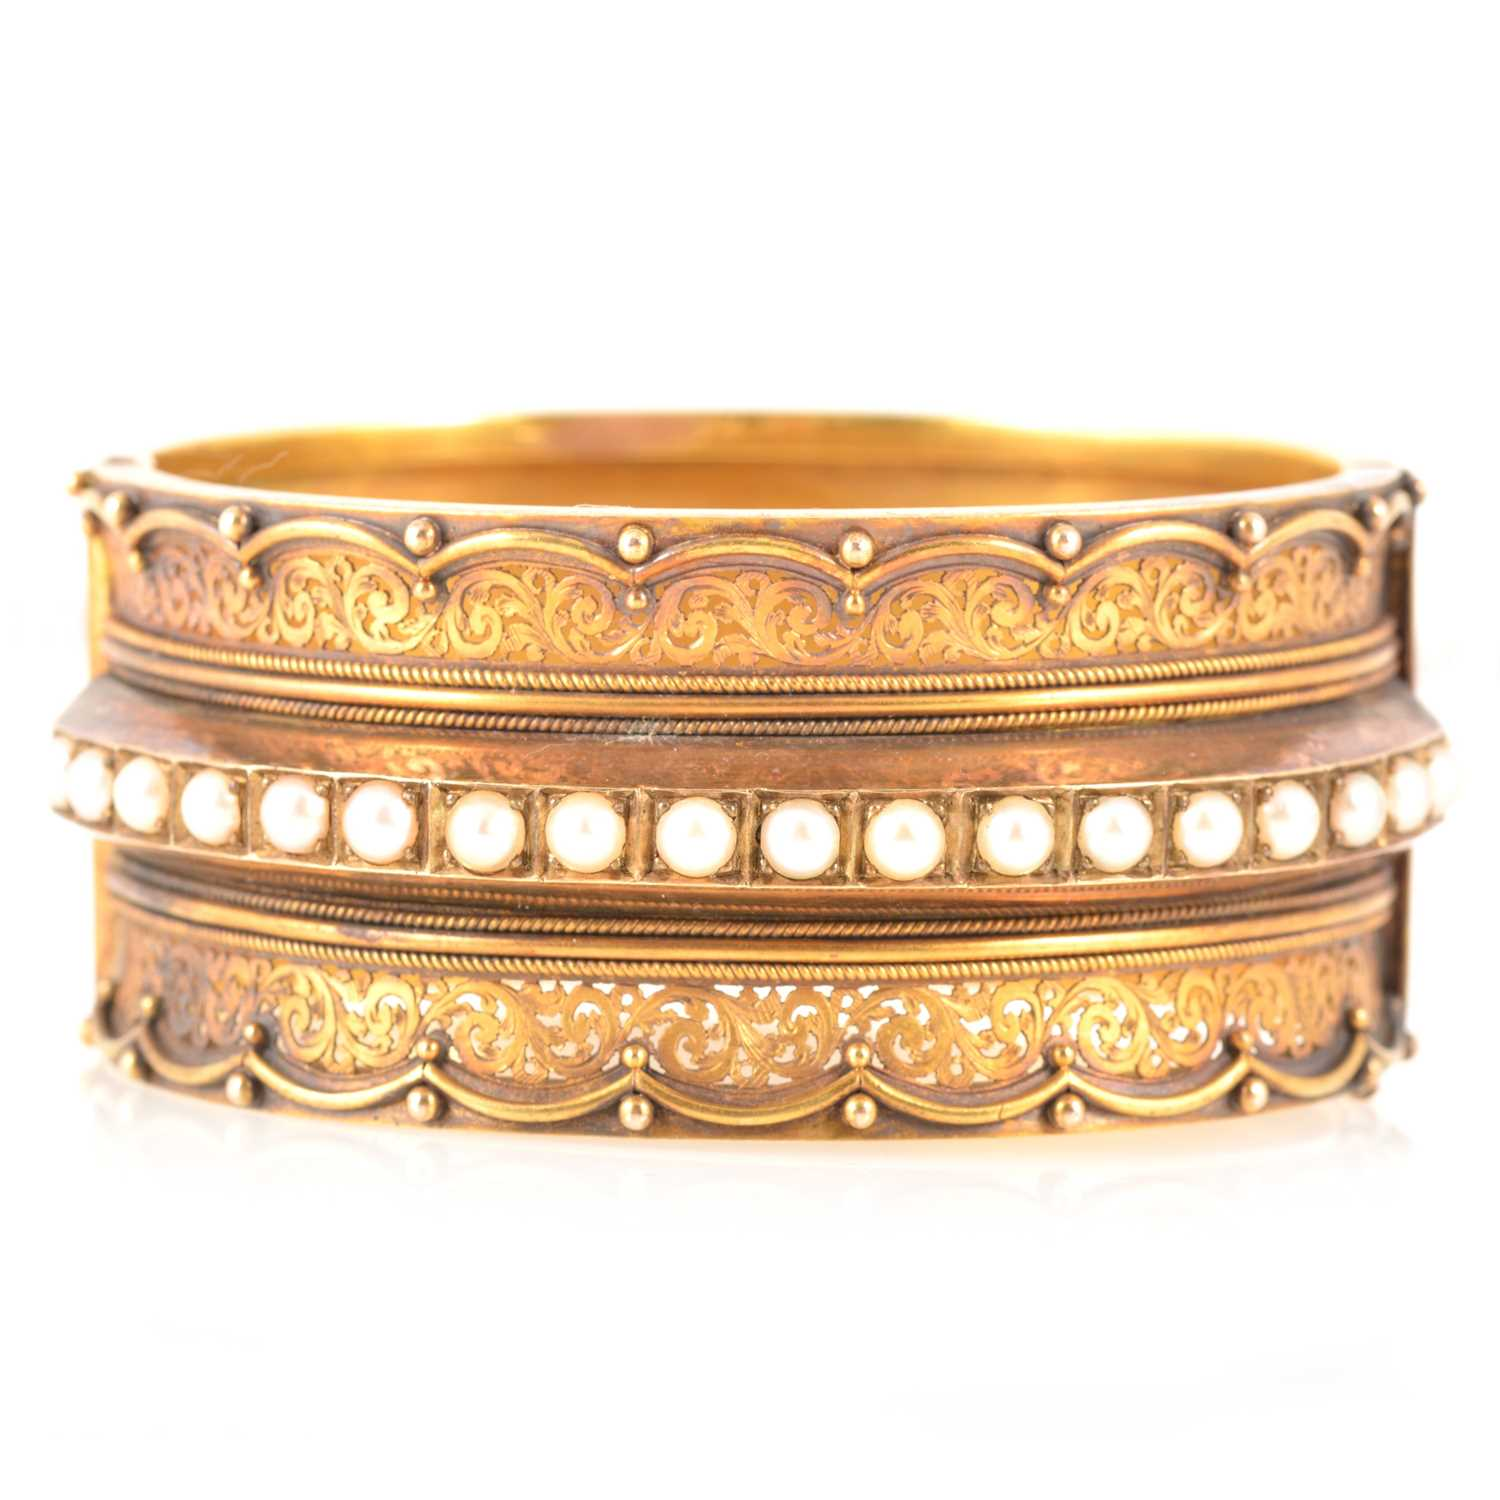 Lot 212 - A Victorian yellow metal half hinged bangle set with pearls.